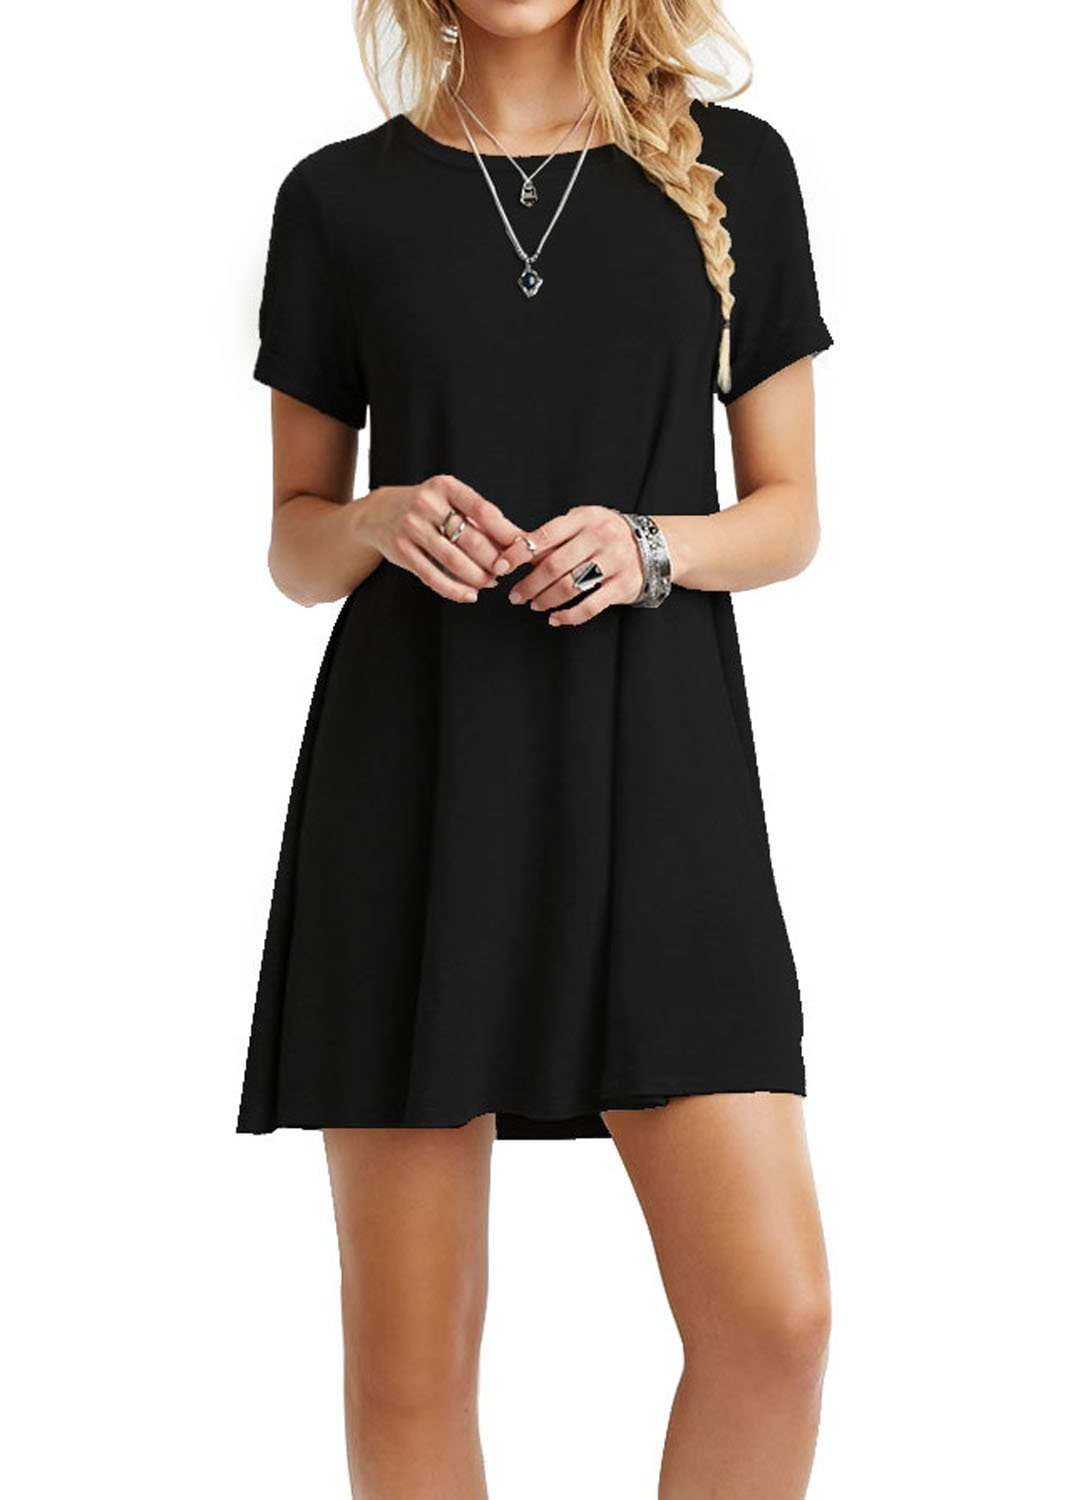 TINYHI Women's Swing Loose Short Sleeve Tshirt Fit Comfy Casual Flowy Tunic Cotton Dress Black,Medium